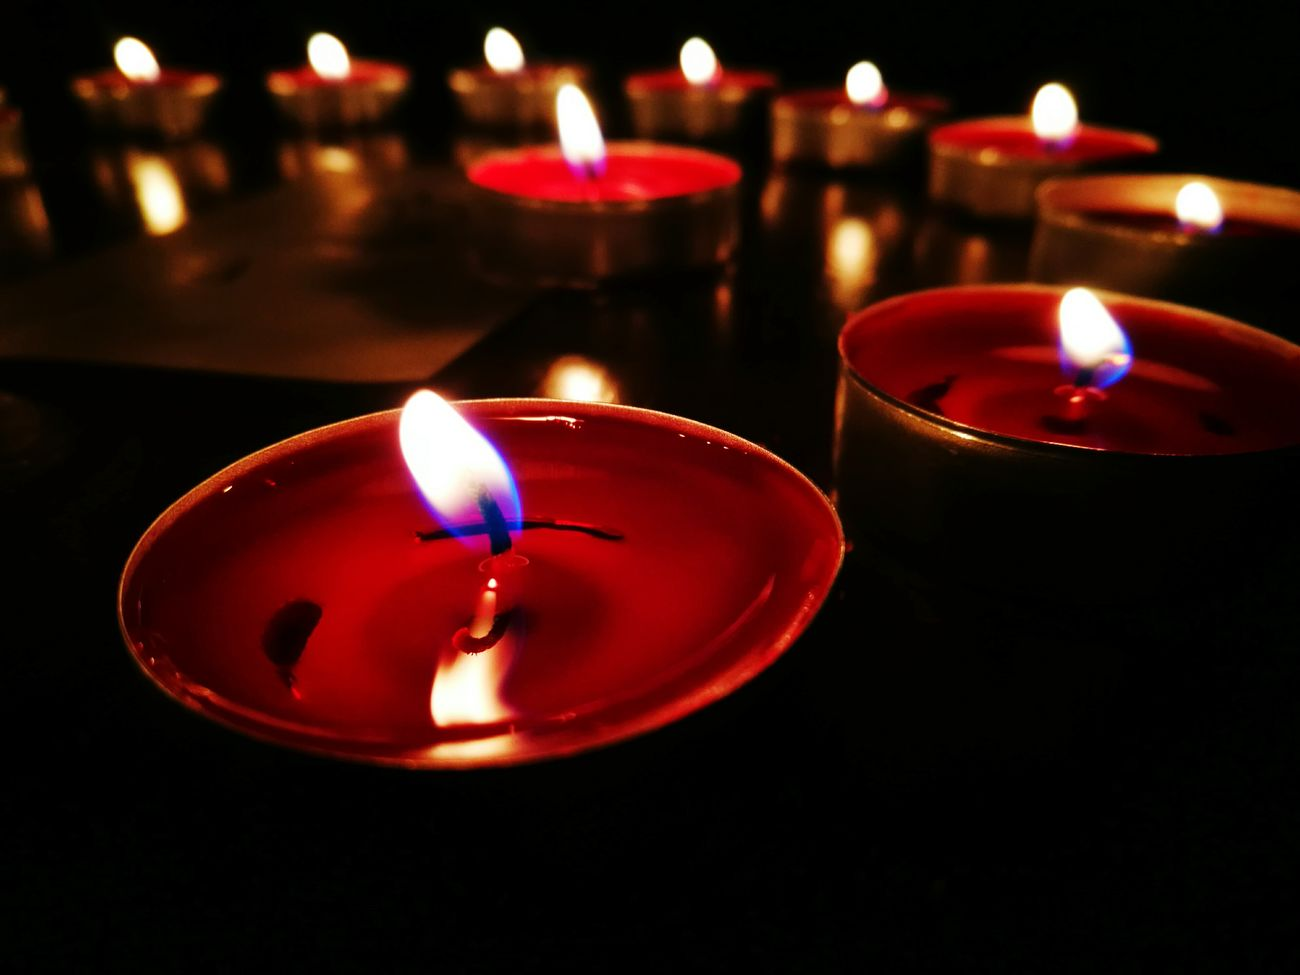 Candles.❤ Candle Flame Redcandle Beautiful Scenery Indoors  Illuminated Burning Fire - Natural Phenomenon